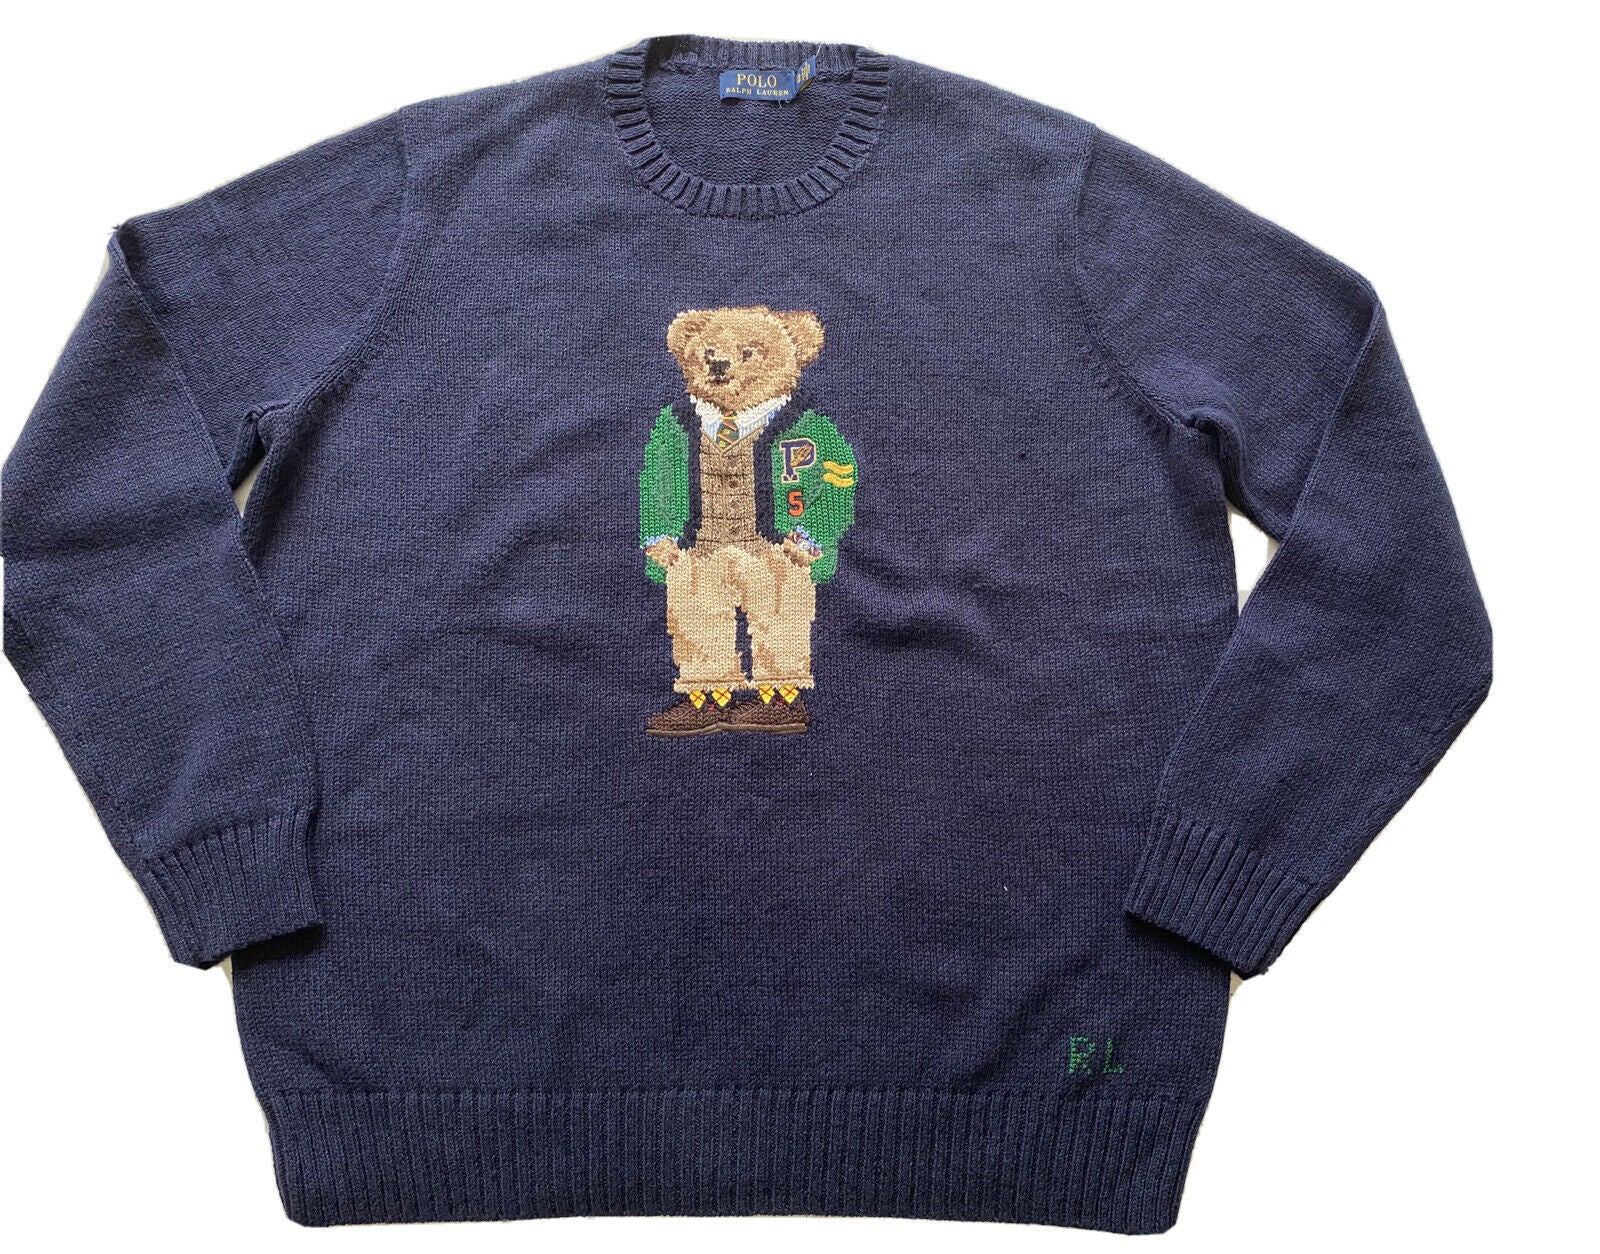 NWT $209 Polo Ralph Lauren Bear Cotton Crewneck Sweater Navy Blue Big &Tall XLT